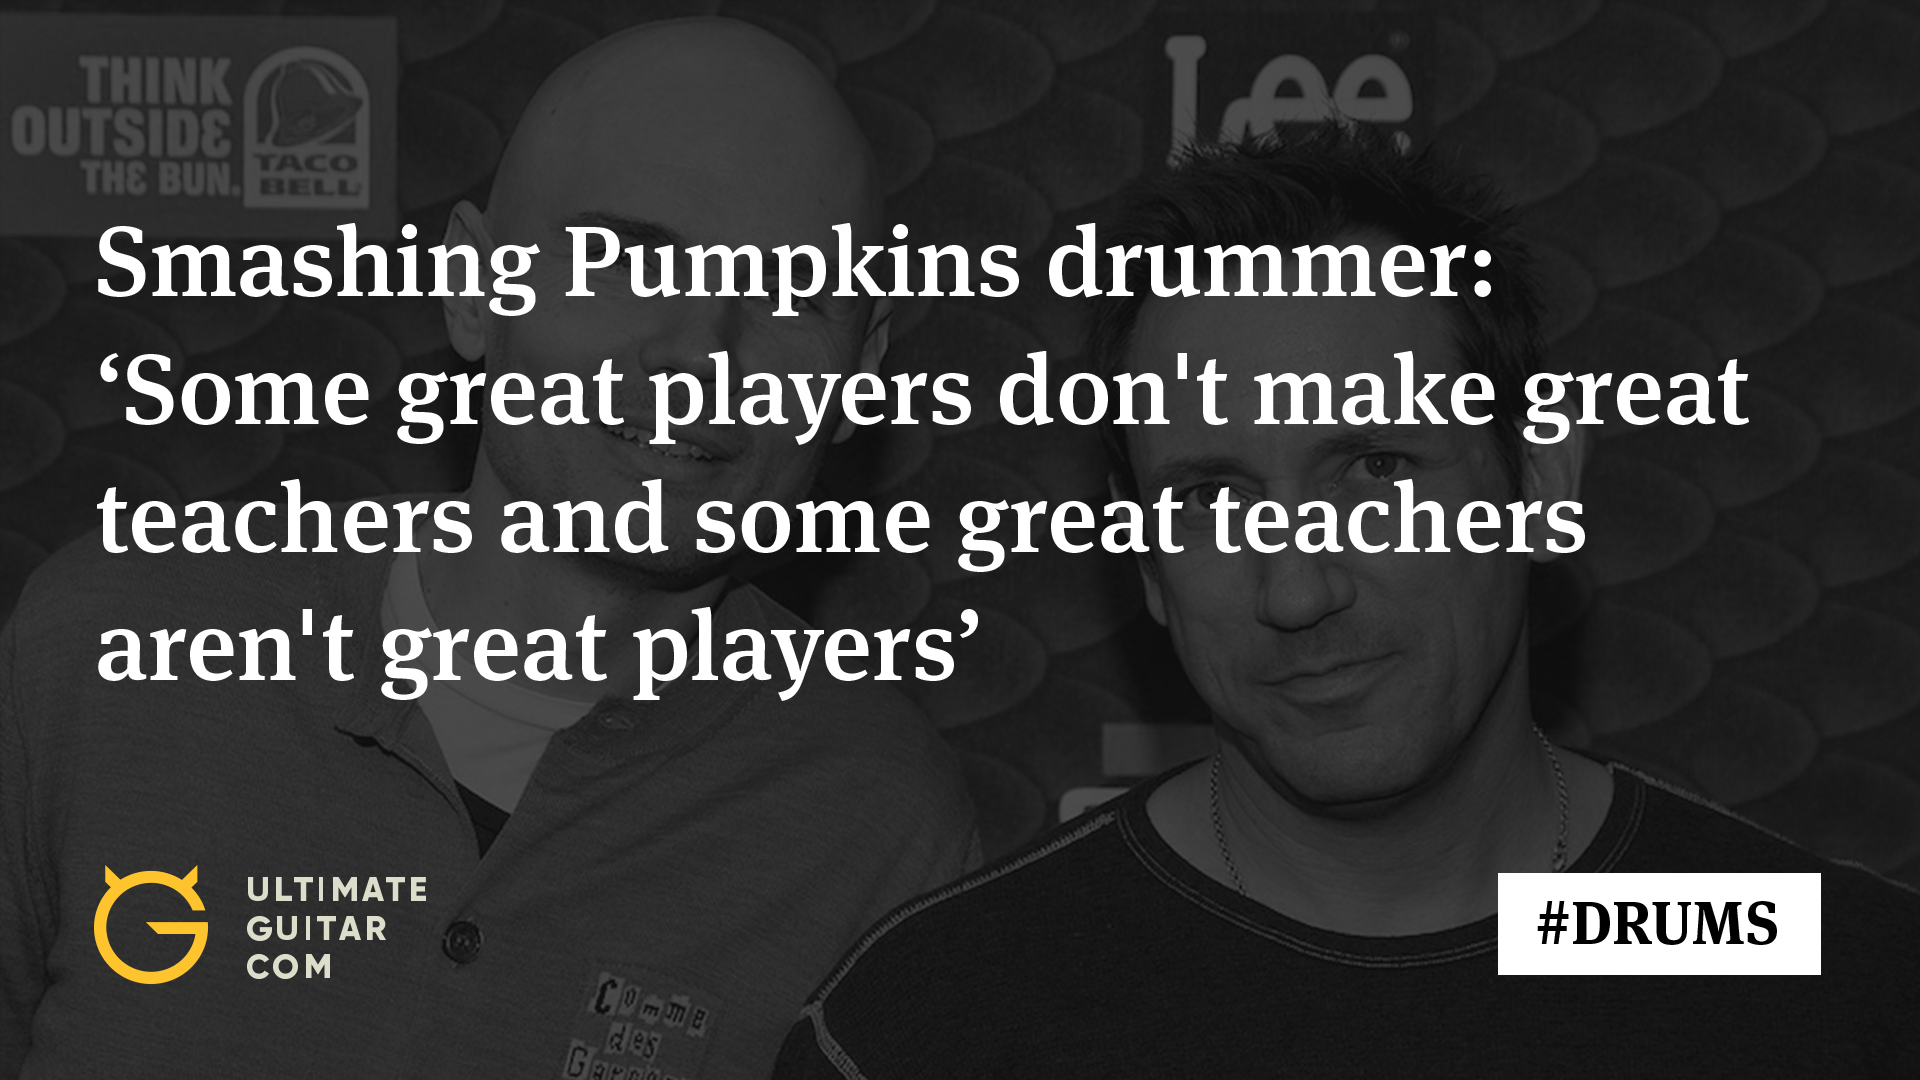 Smashing Pumpkins Drummer Jimmy Chamberlin: How Much Drum Lessons Meant to Me - Music News @ Ultimate-Guitar.ComSmashing Pumpkins Drummer Jimmy Chamberlin: How Much Drum Lessons Meant to Me - 웹